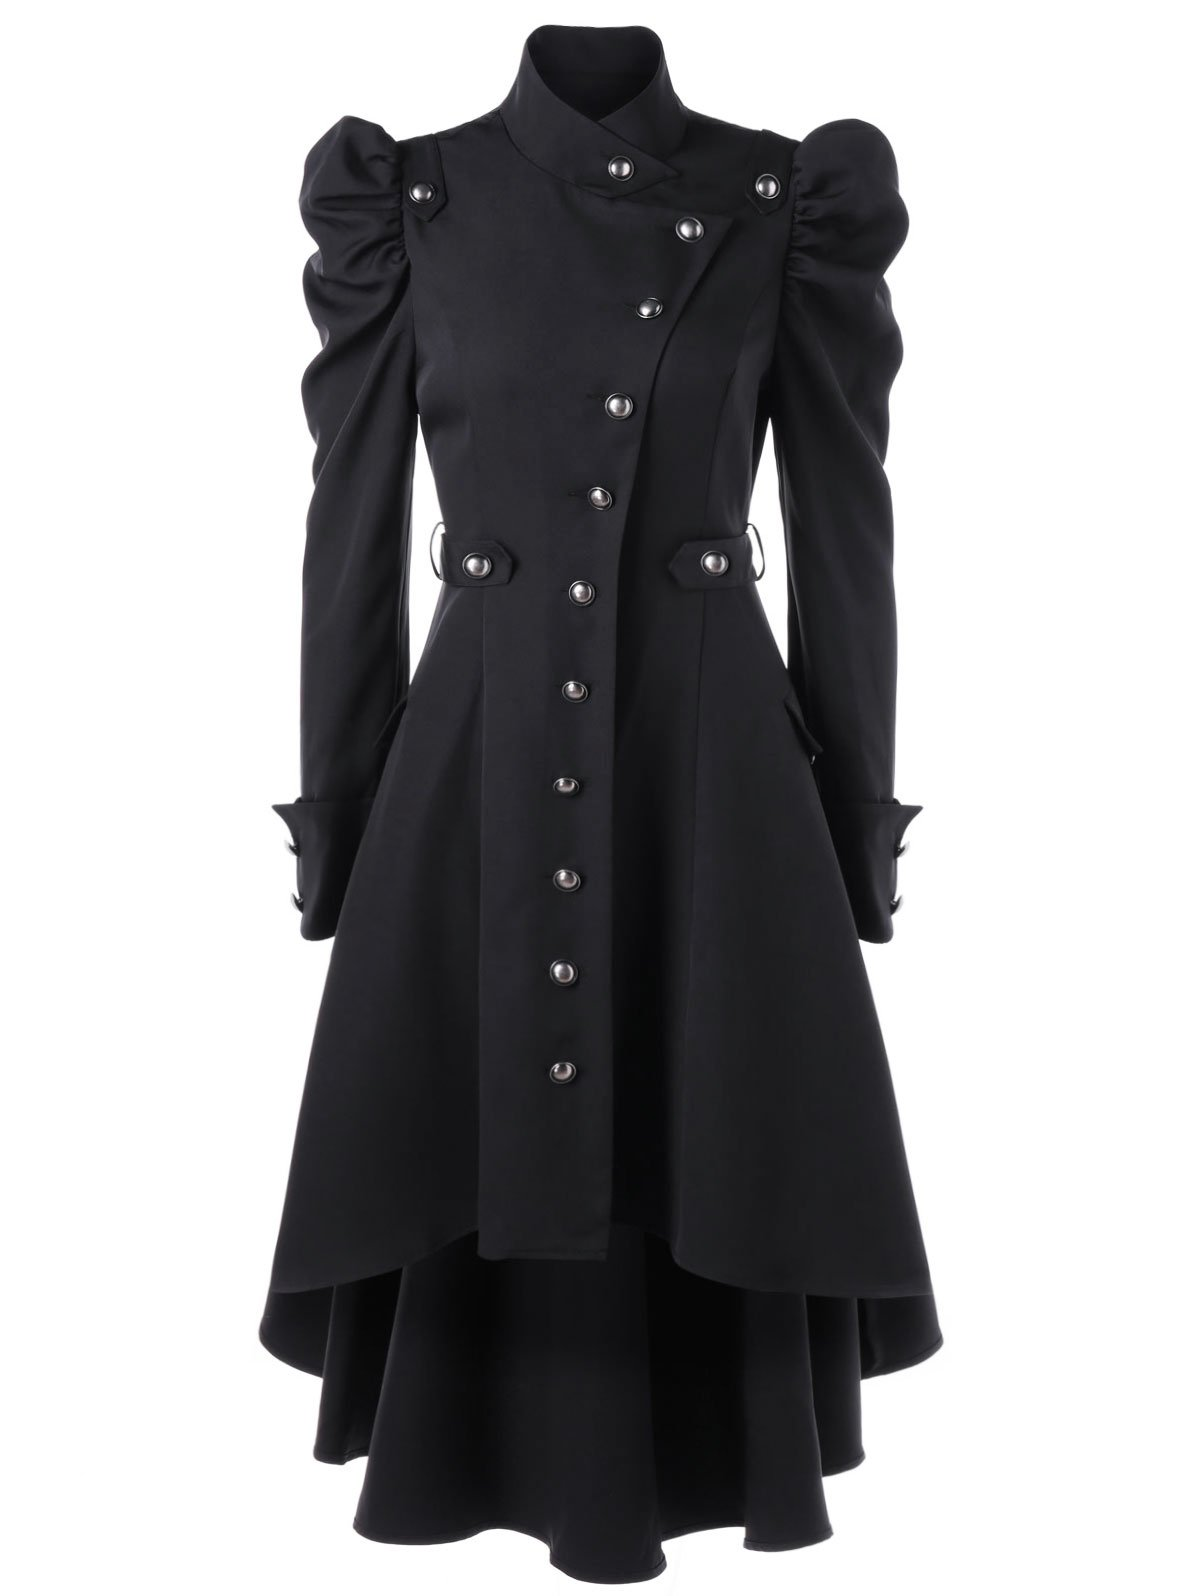 Nihsatin Vintage Steampunk Victorian Swallow Tail Long Trench Coat Jacket Puff Shoulder Single Breasted Black by Nihsatin